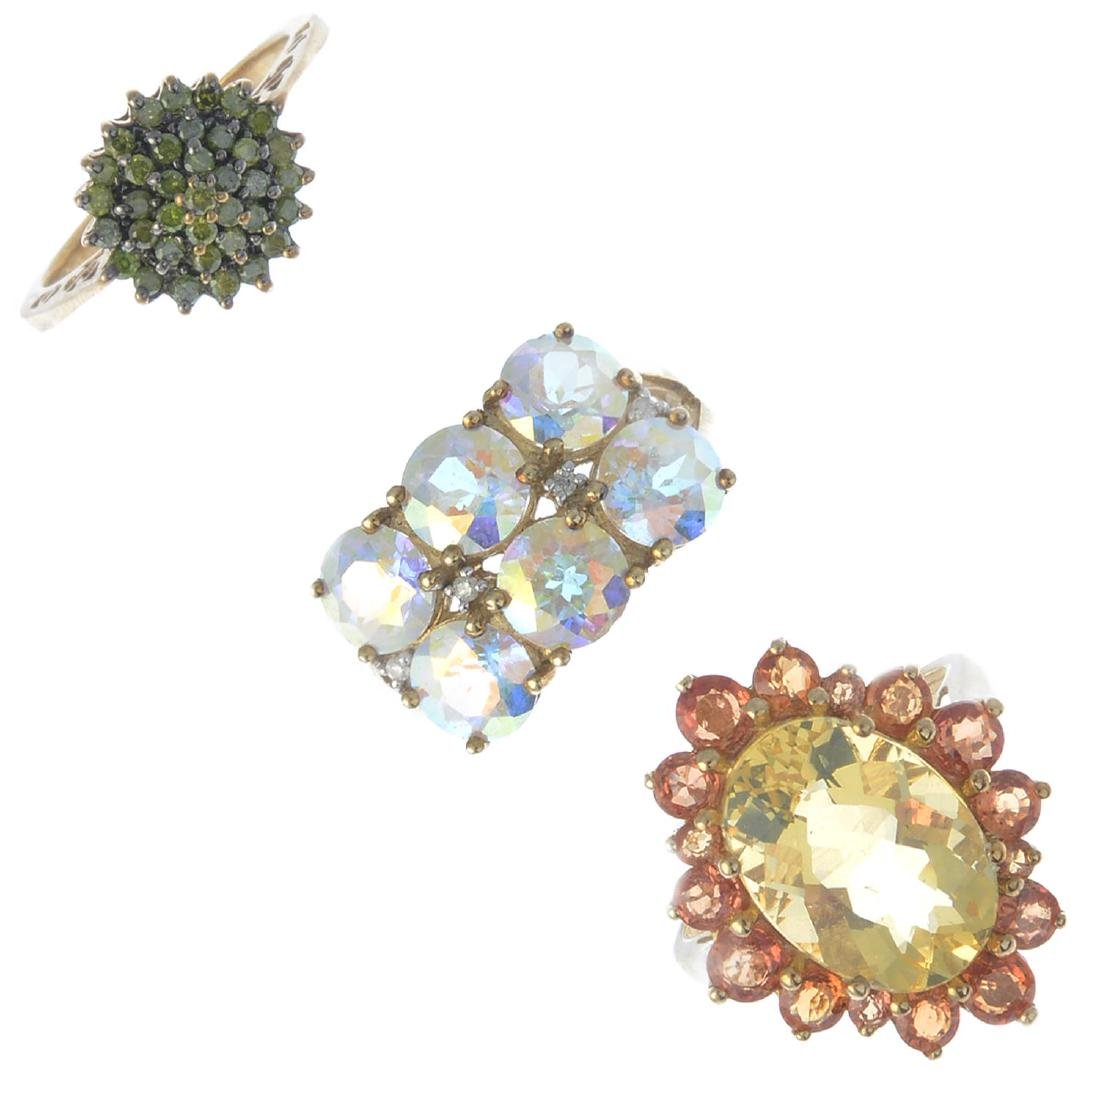 Three 9ct gold gem-set dress rings. To include a fire